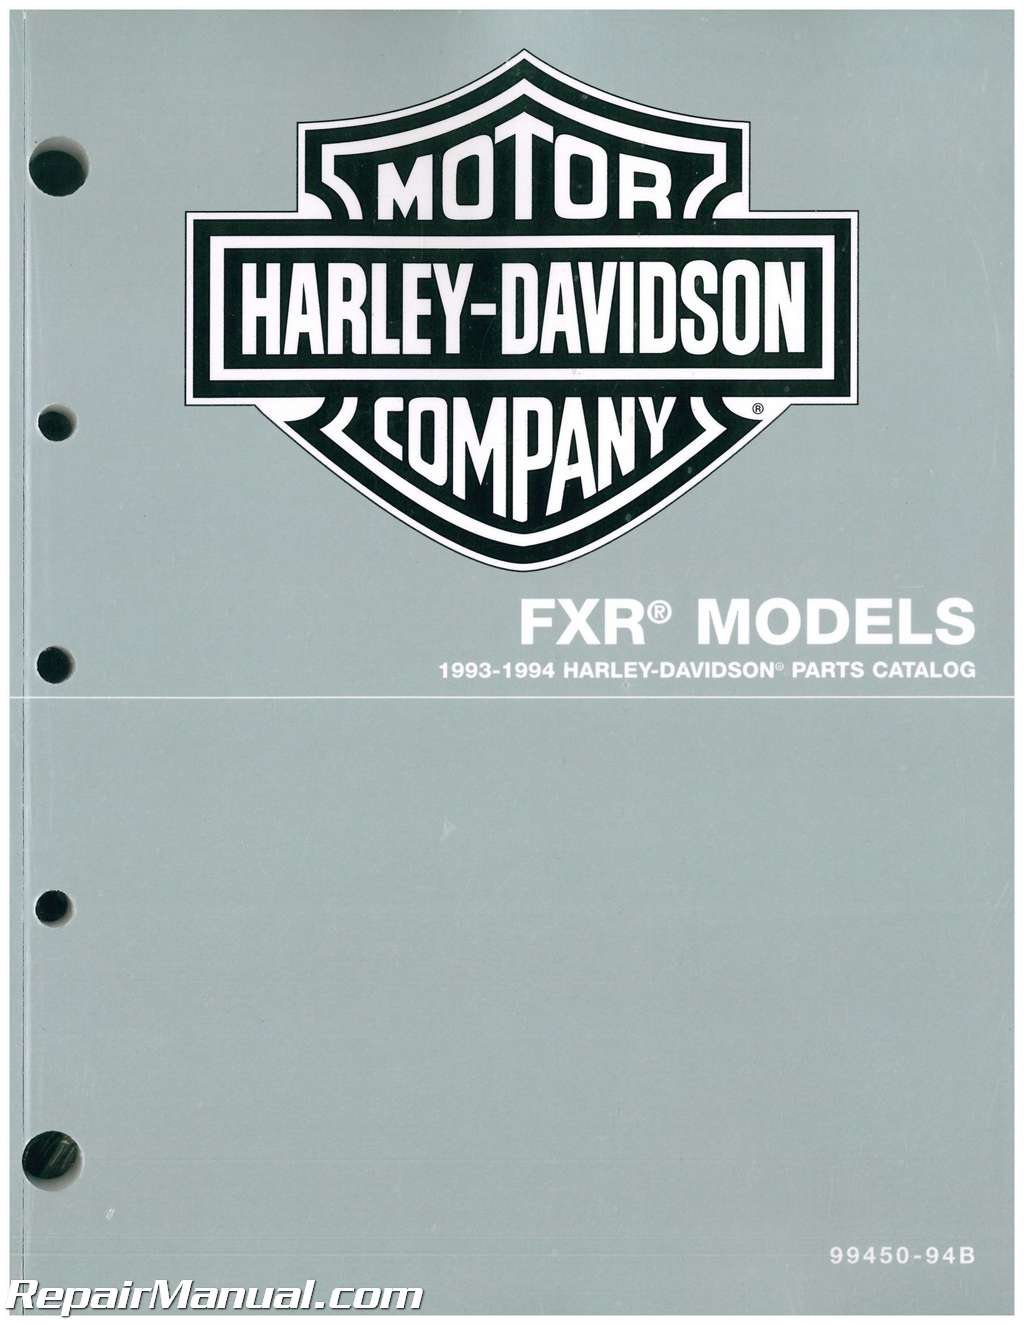 Harley Davidson All Cc Motorcycle Parts Manual on 1992 Harley Softail Wiring Diagram